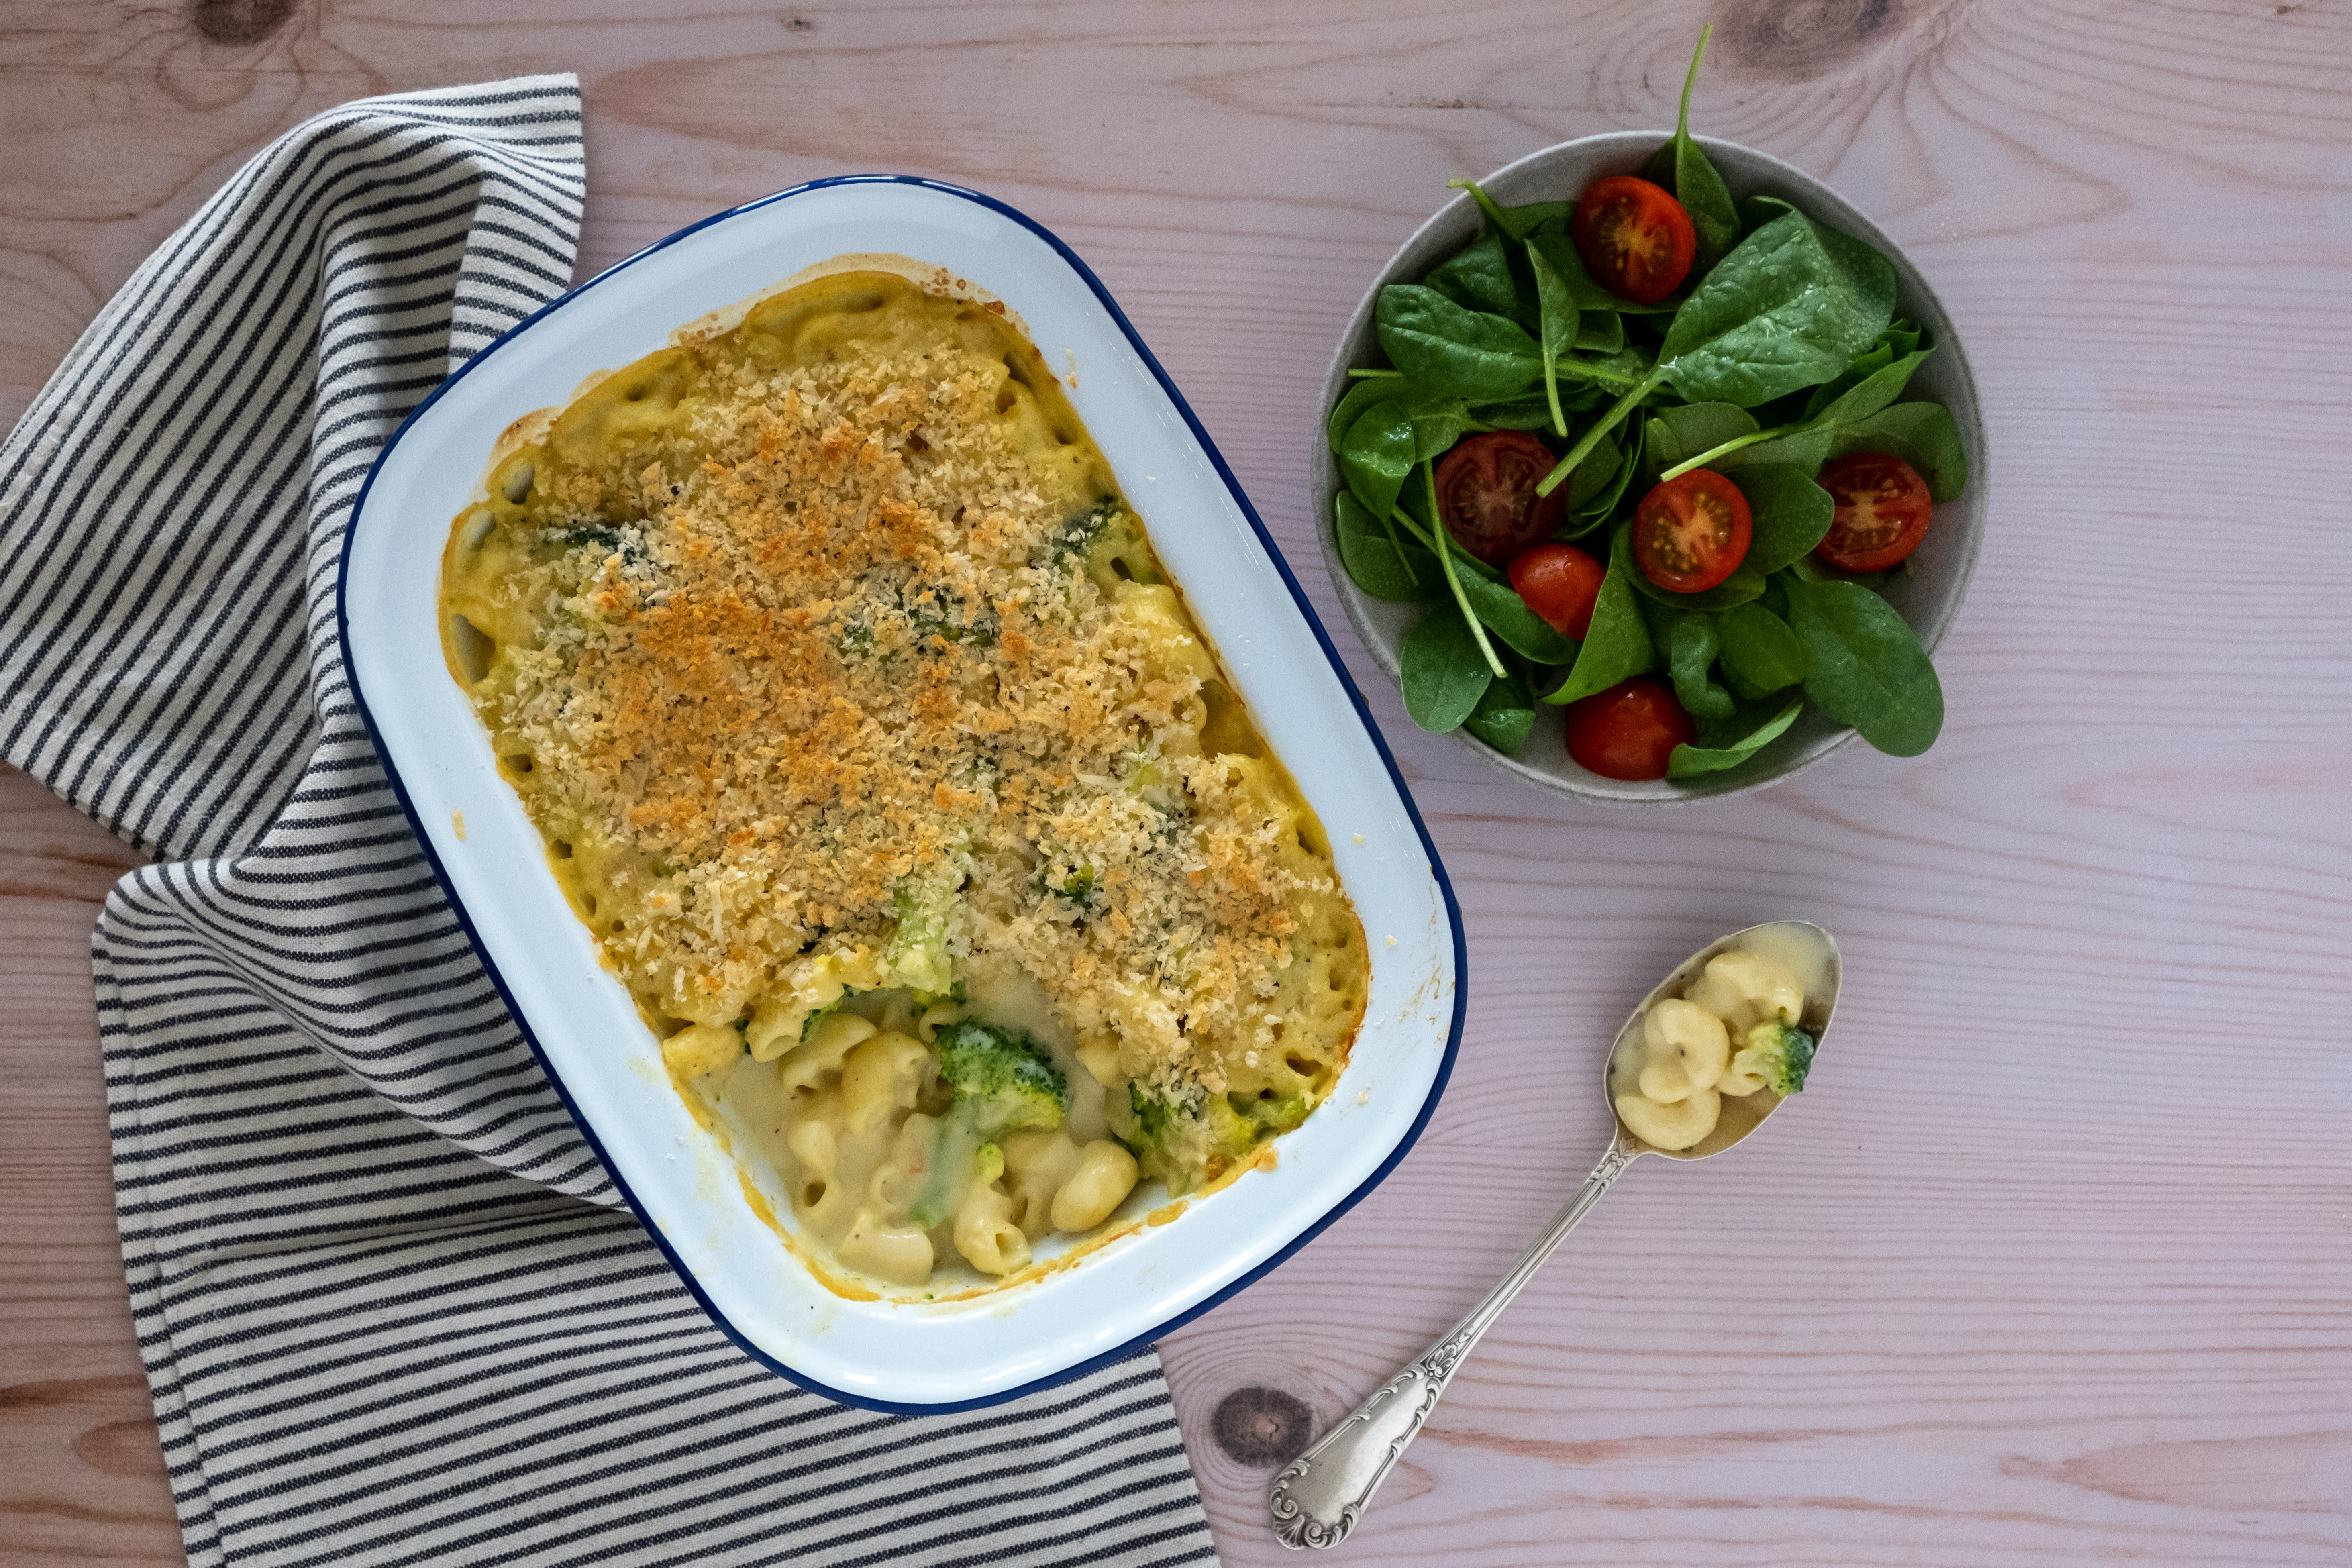 Macaroni Cheese & Broccoli Bake with Tomato and Baby Spinach Side Salad